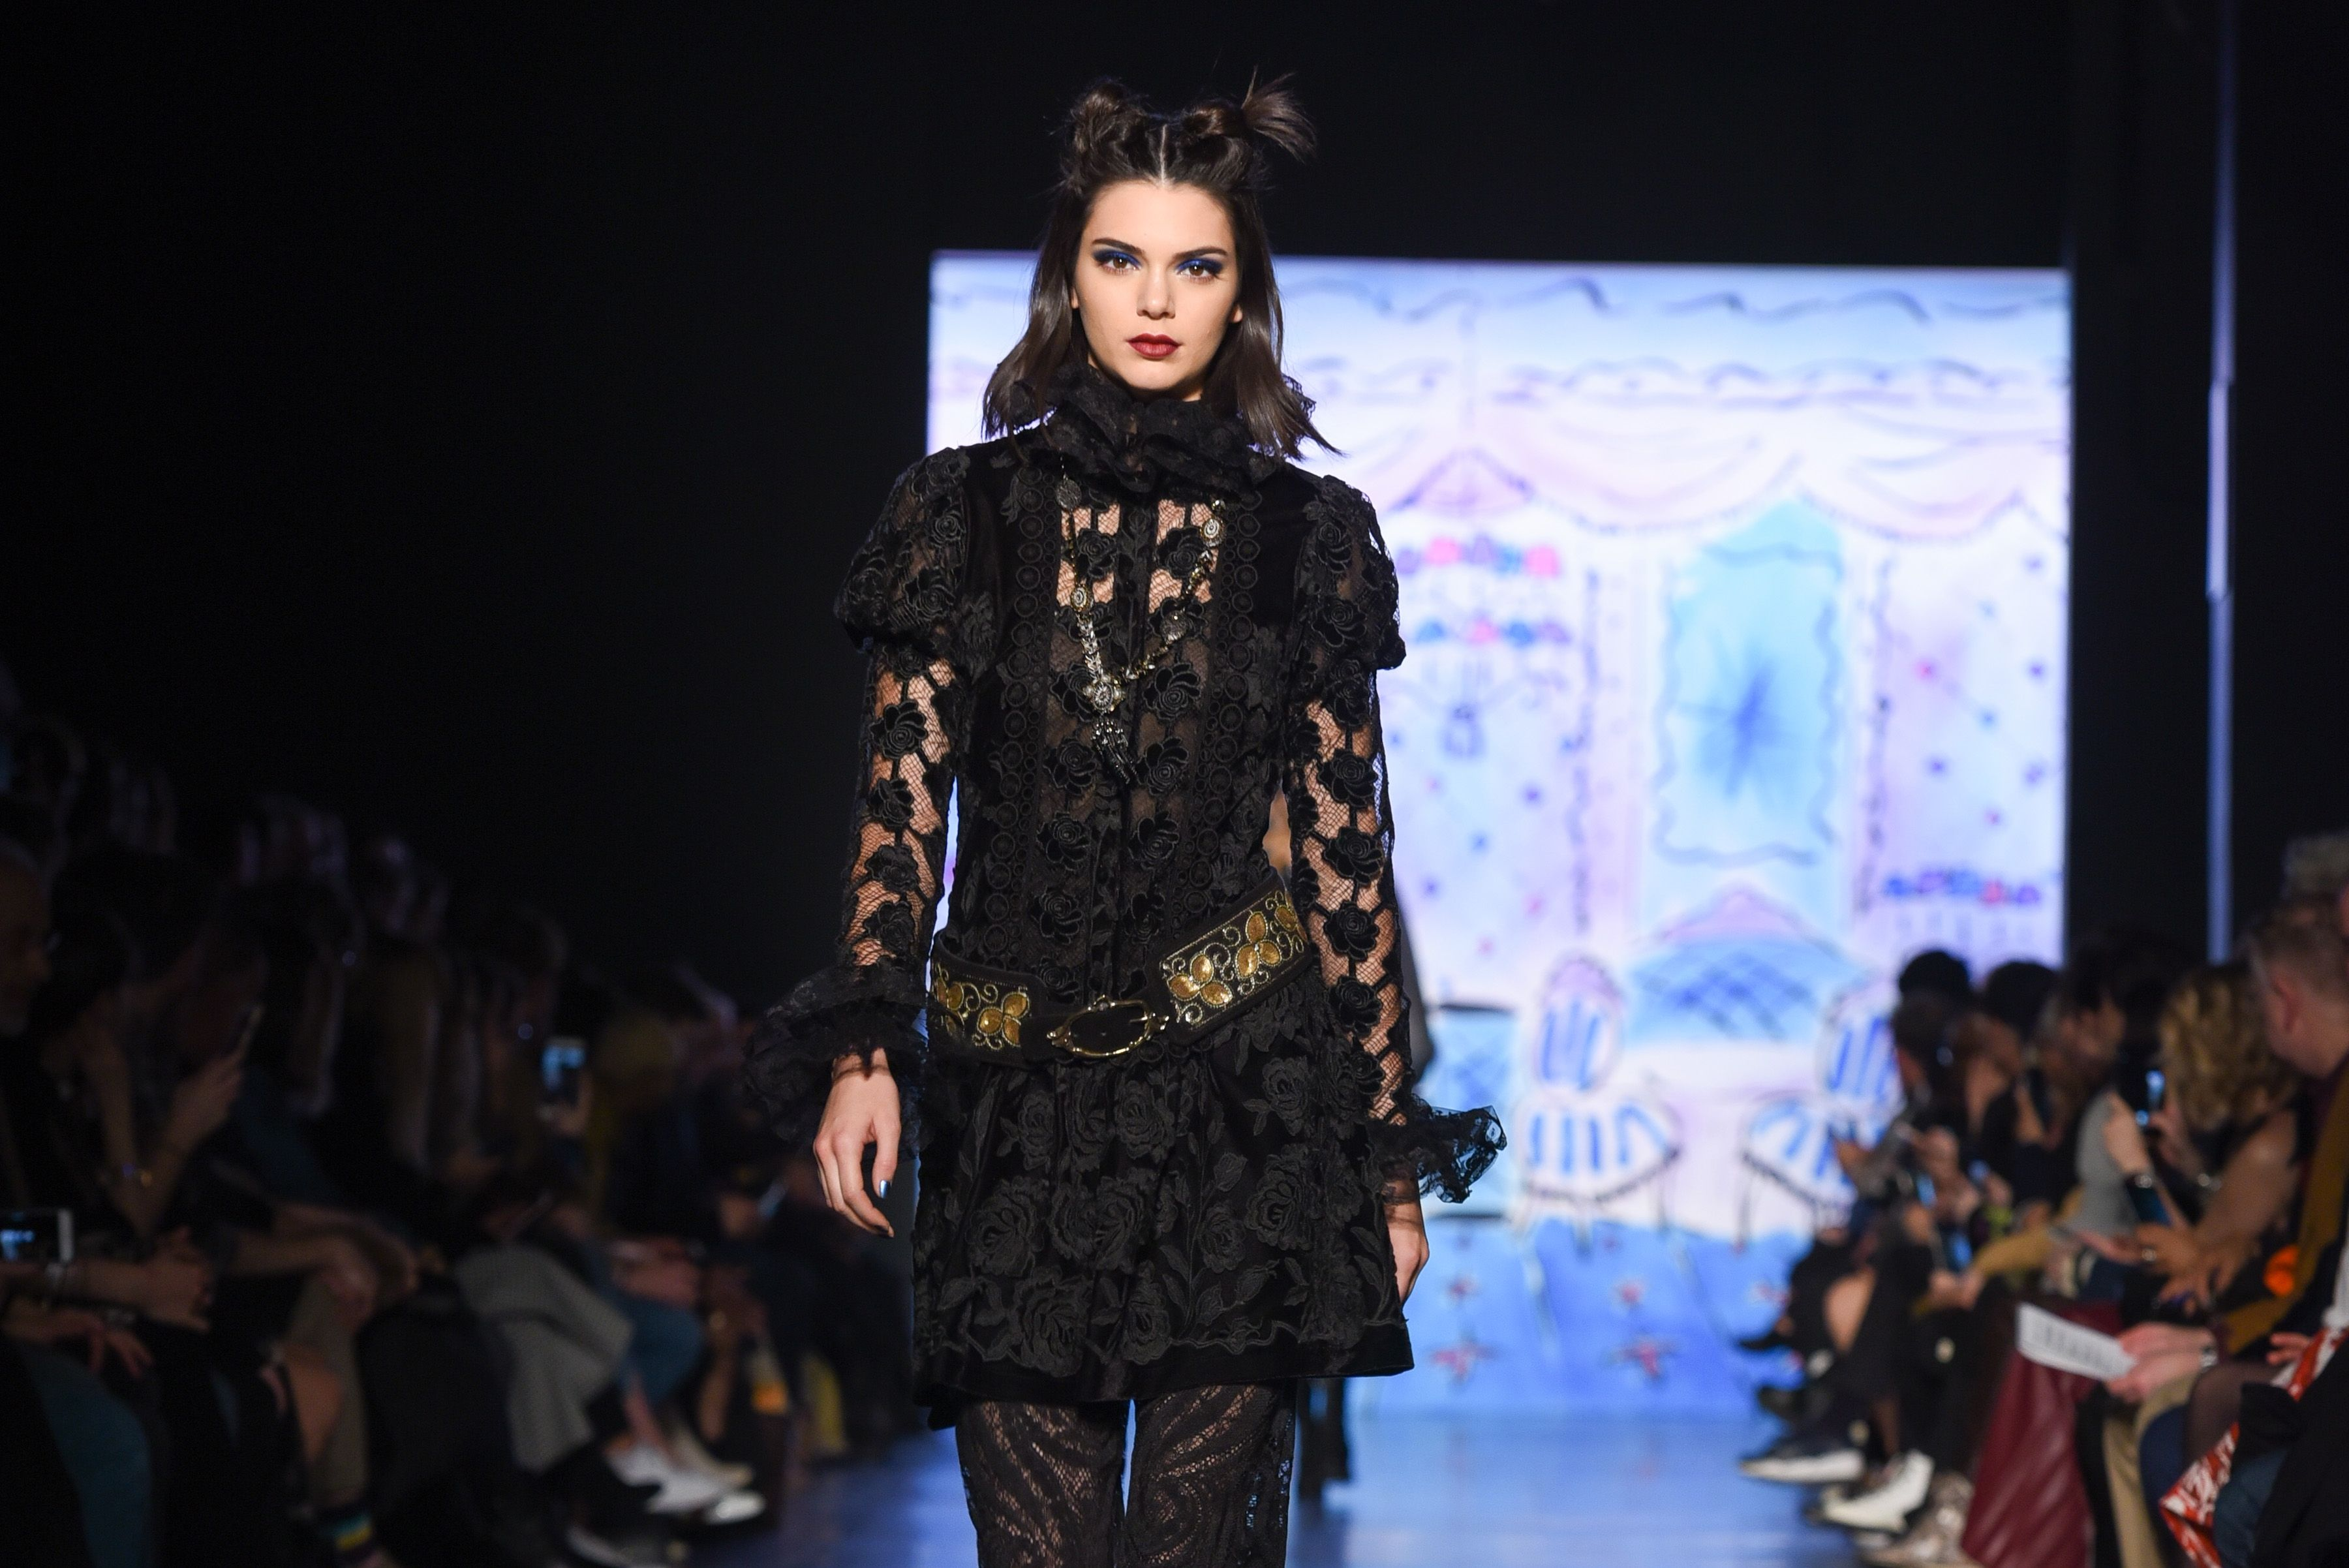 Anna Sui's Fall 2017 Show at Skylight Clarkson Square  / Getty